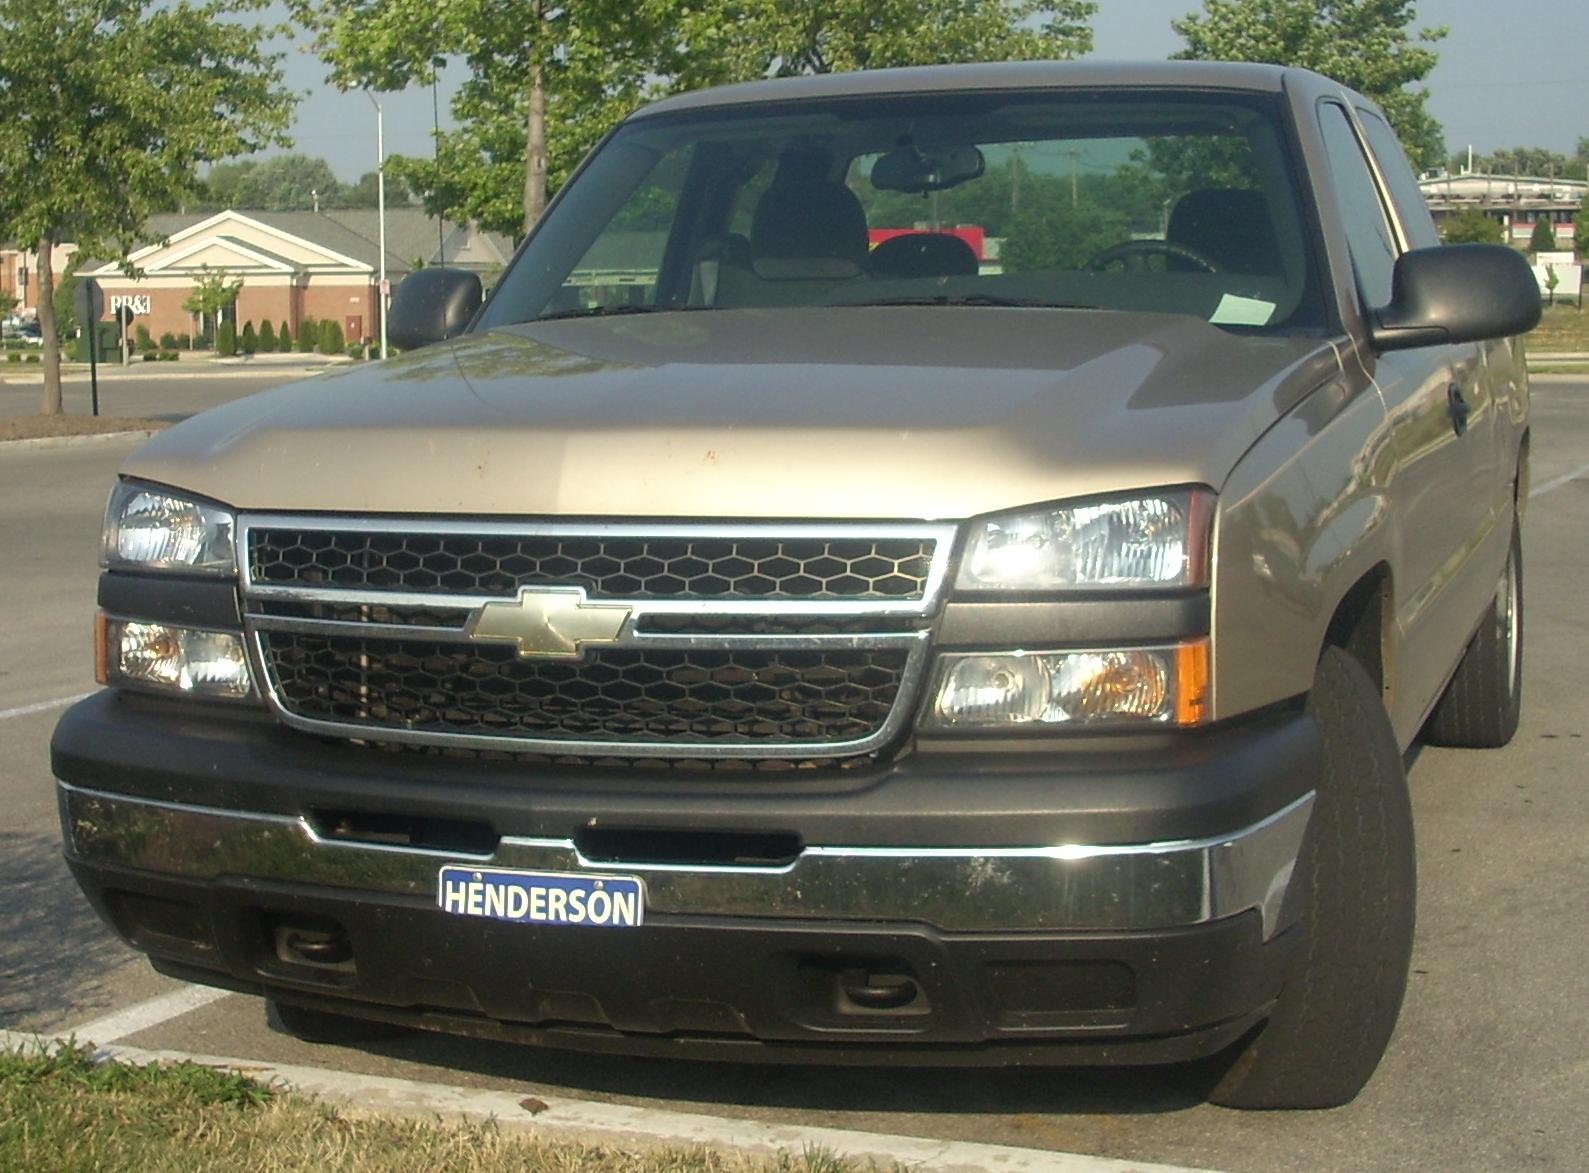 file 2006 chevrolet silverado ext cab jpg wikimedia commons. Cars Review. Best American Auto & Cars Review